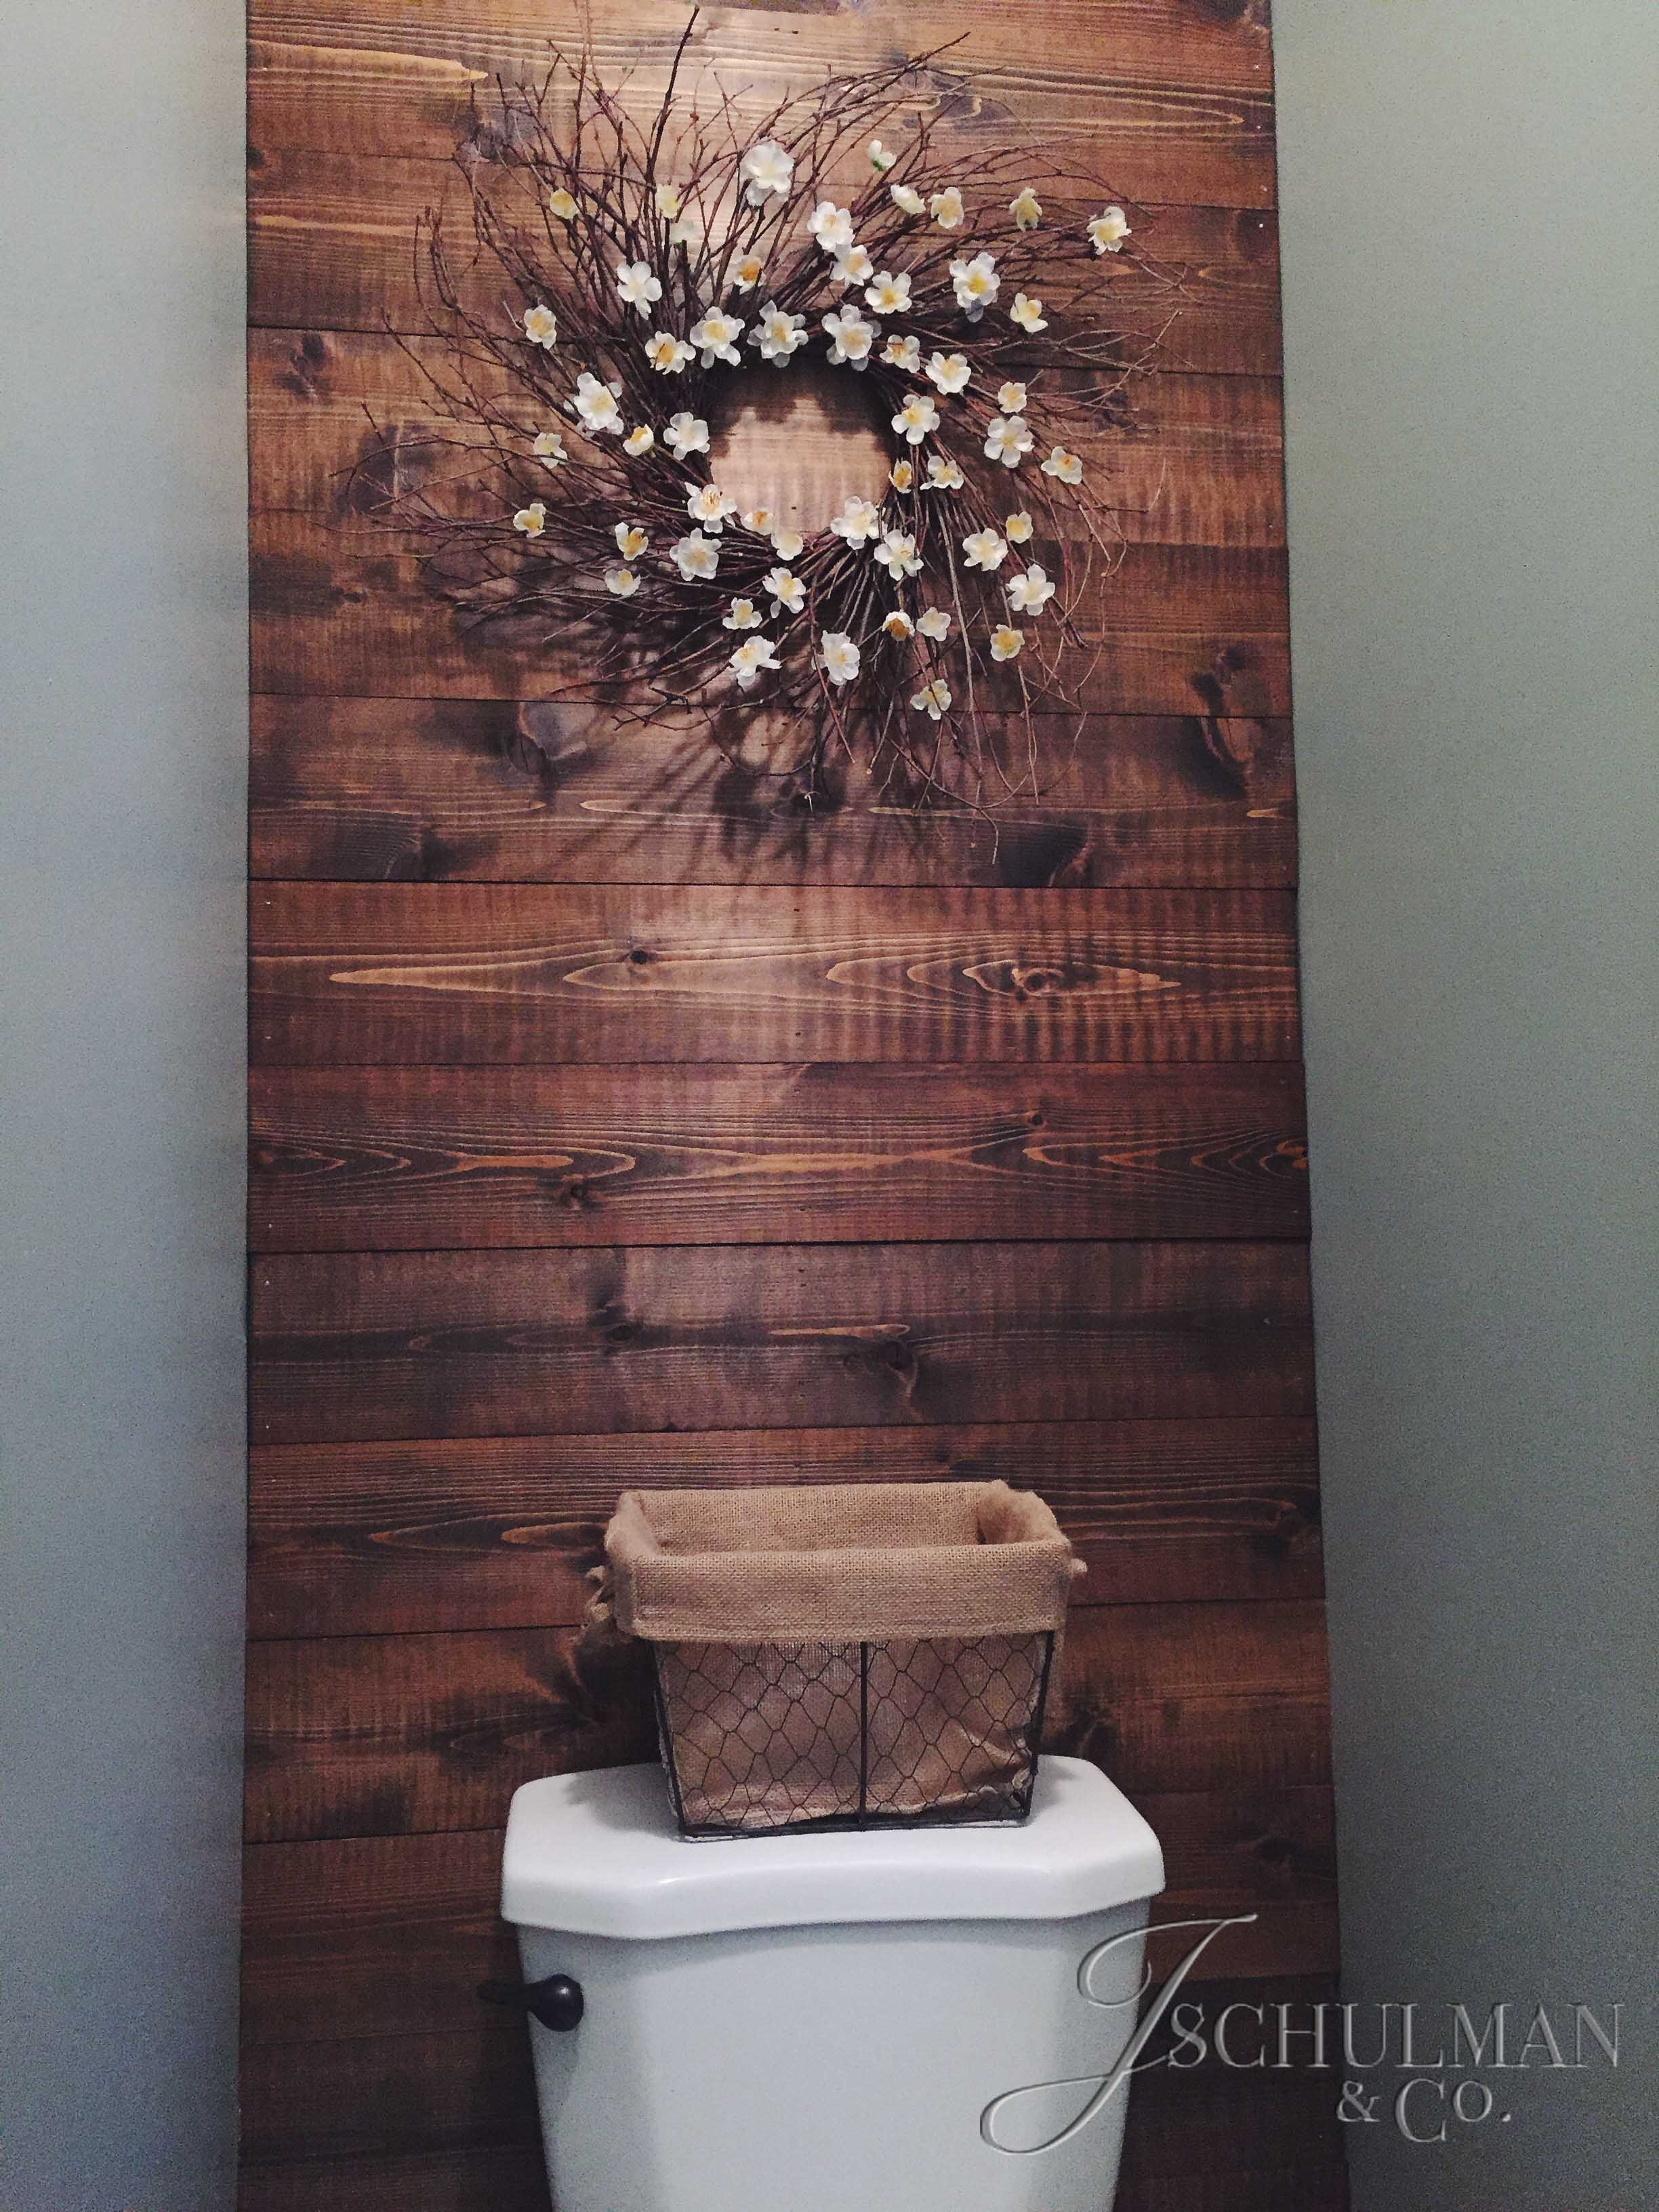 30 Inspiring Accent Wall Ideas To Change An Area | Bathroom Accent Pertaining To Recent Wall Accents For Bathroom (View 1 of 15)